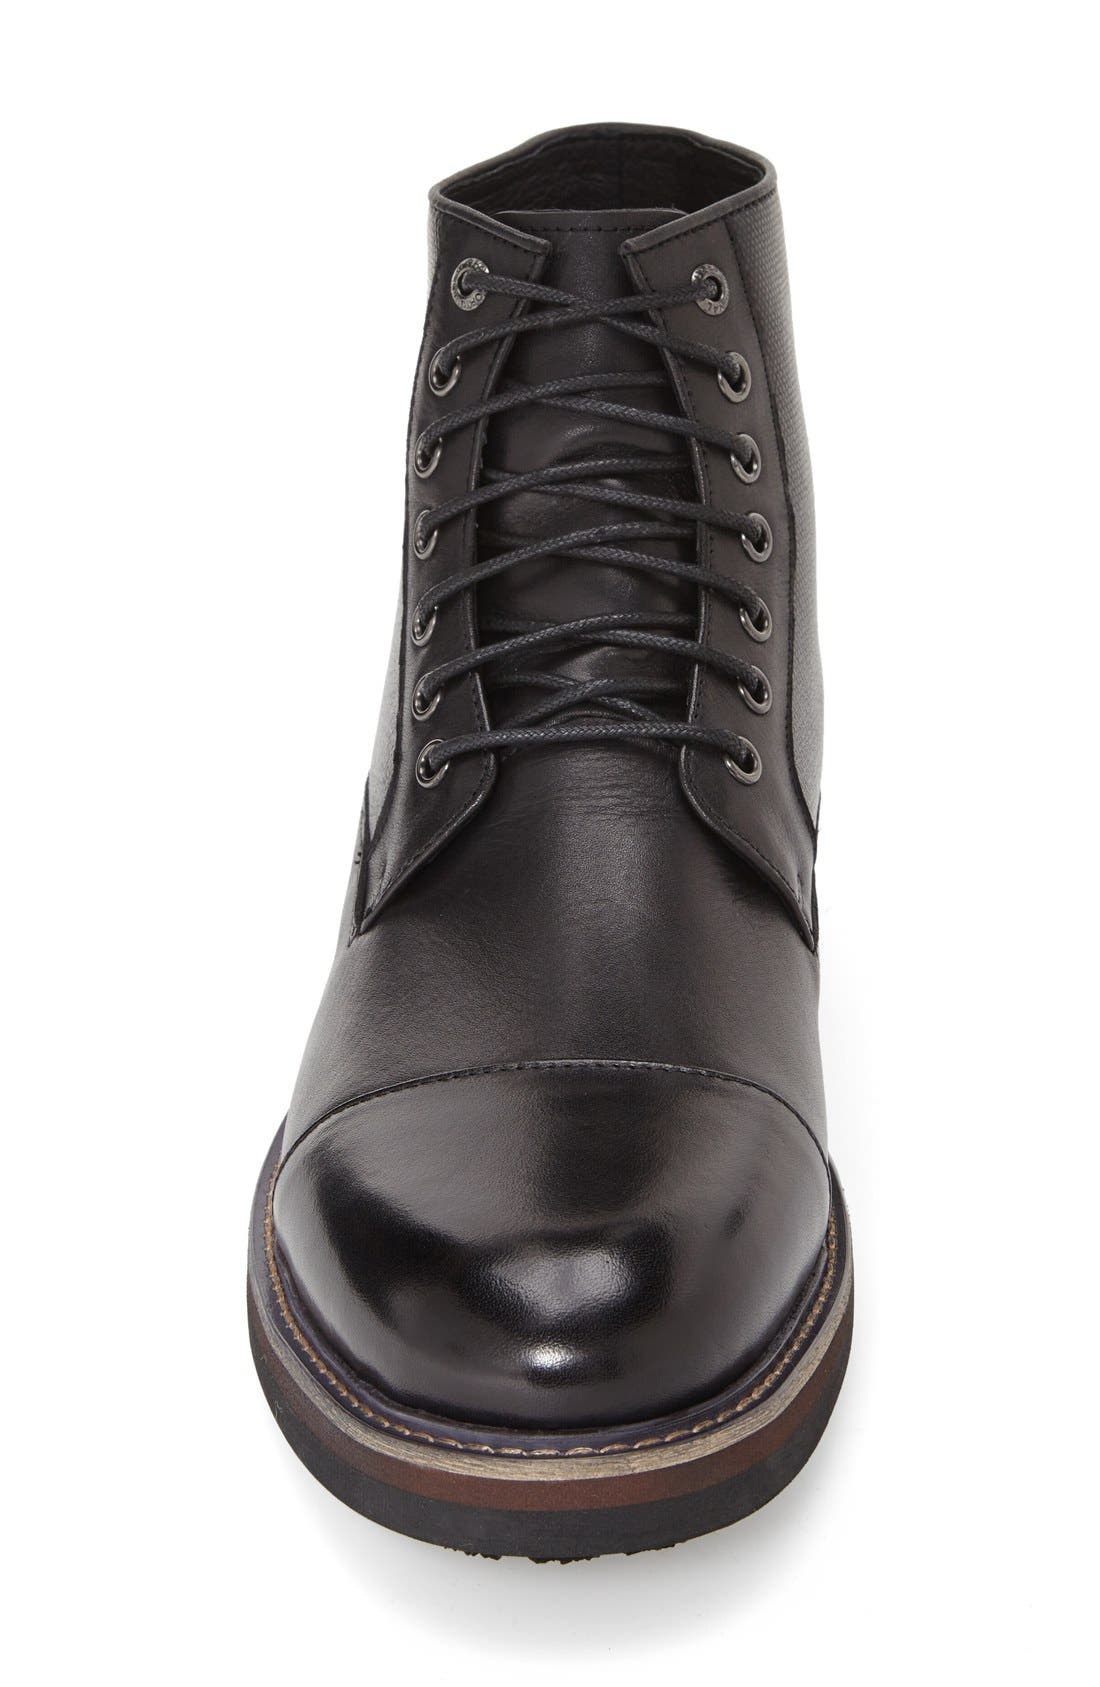 'Northstar' Cap Toe Boot,                             Alternate thumbnail 3, color,                             Black Leather